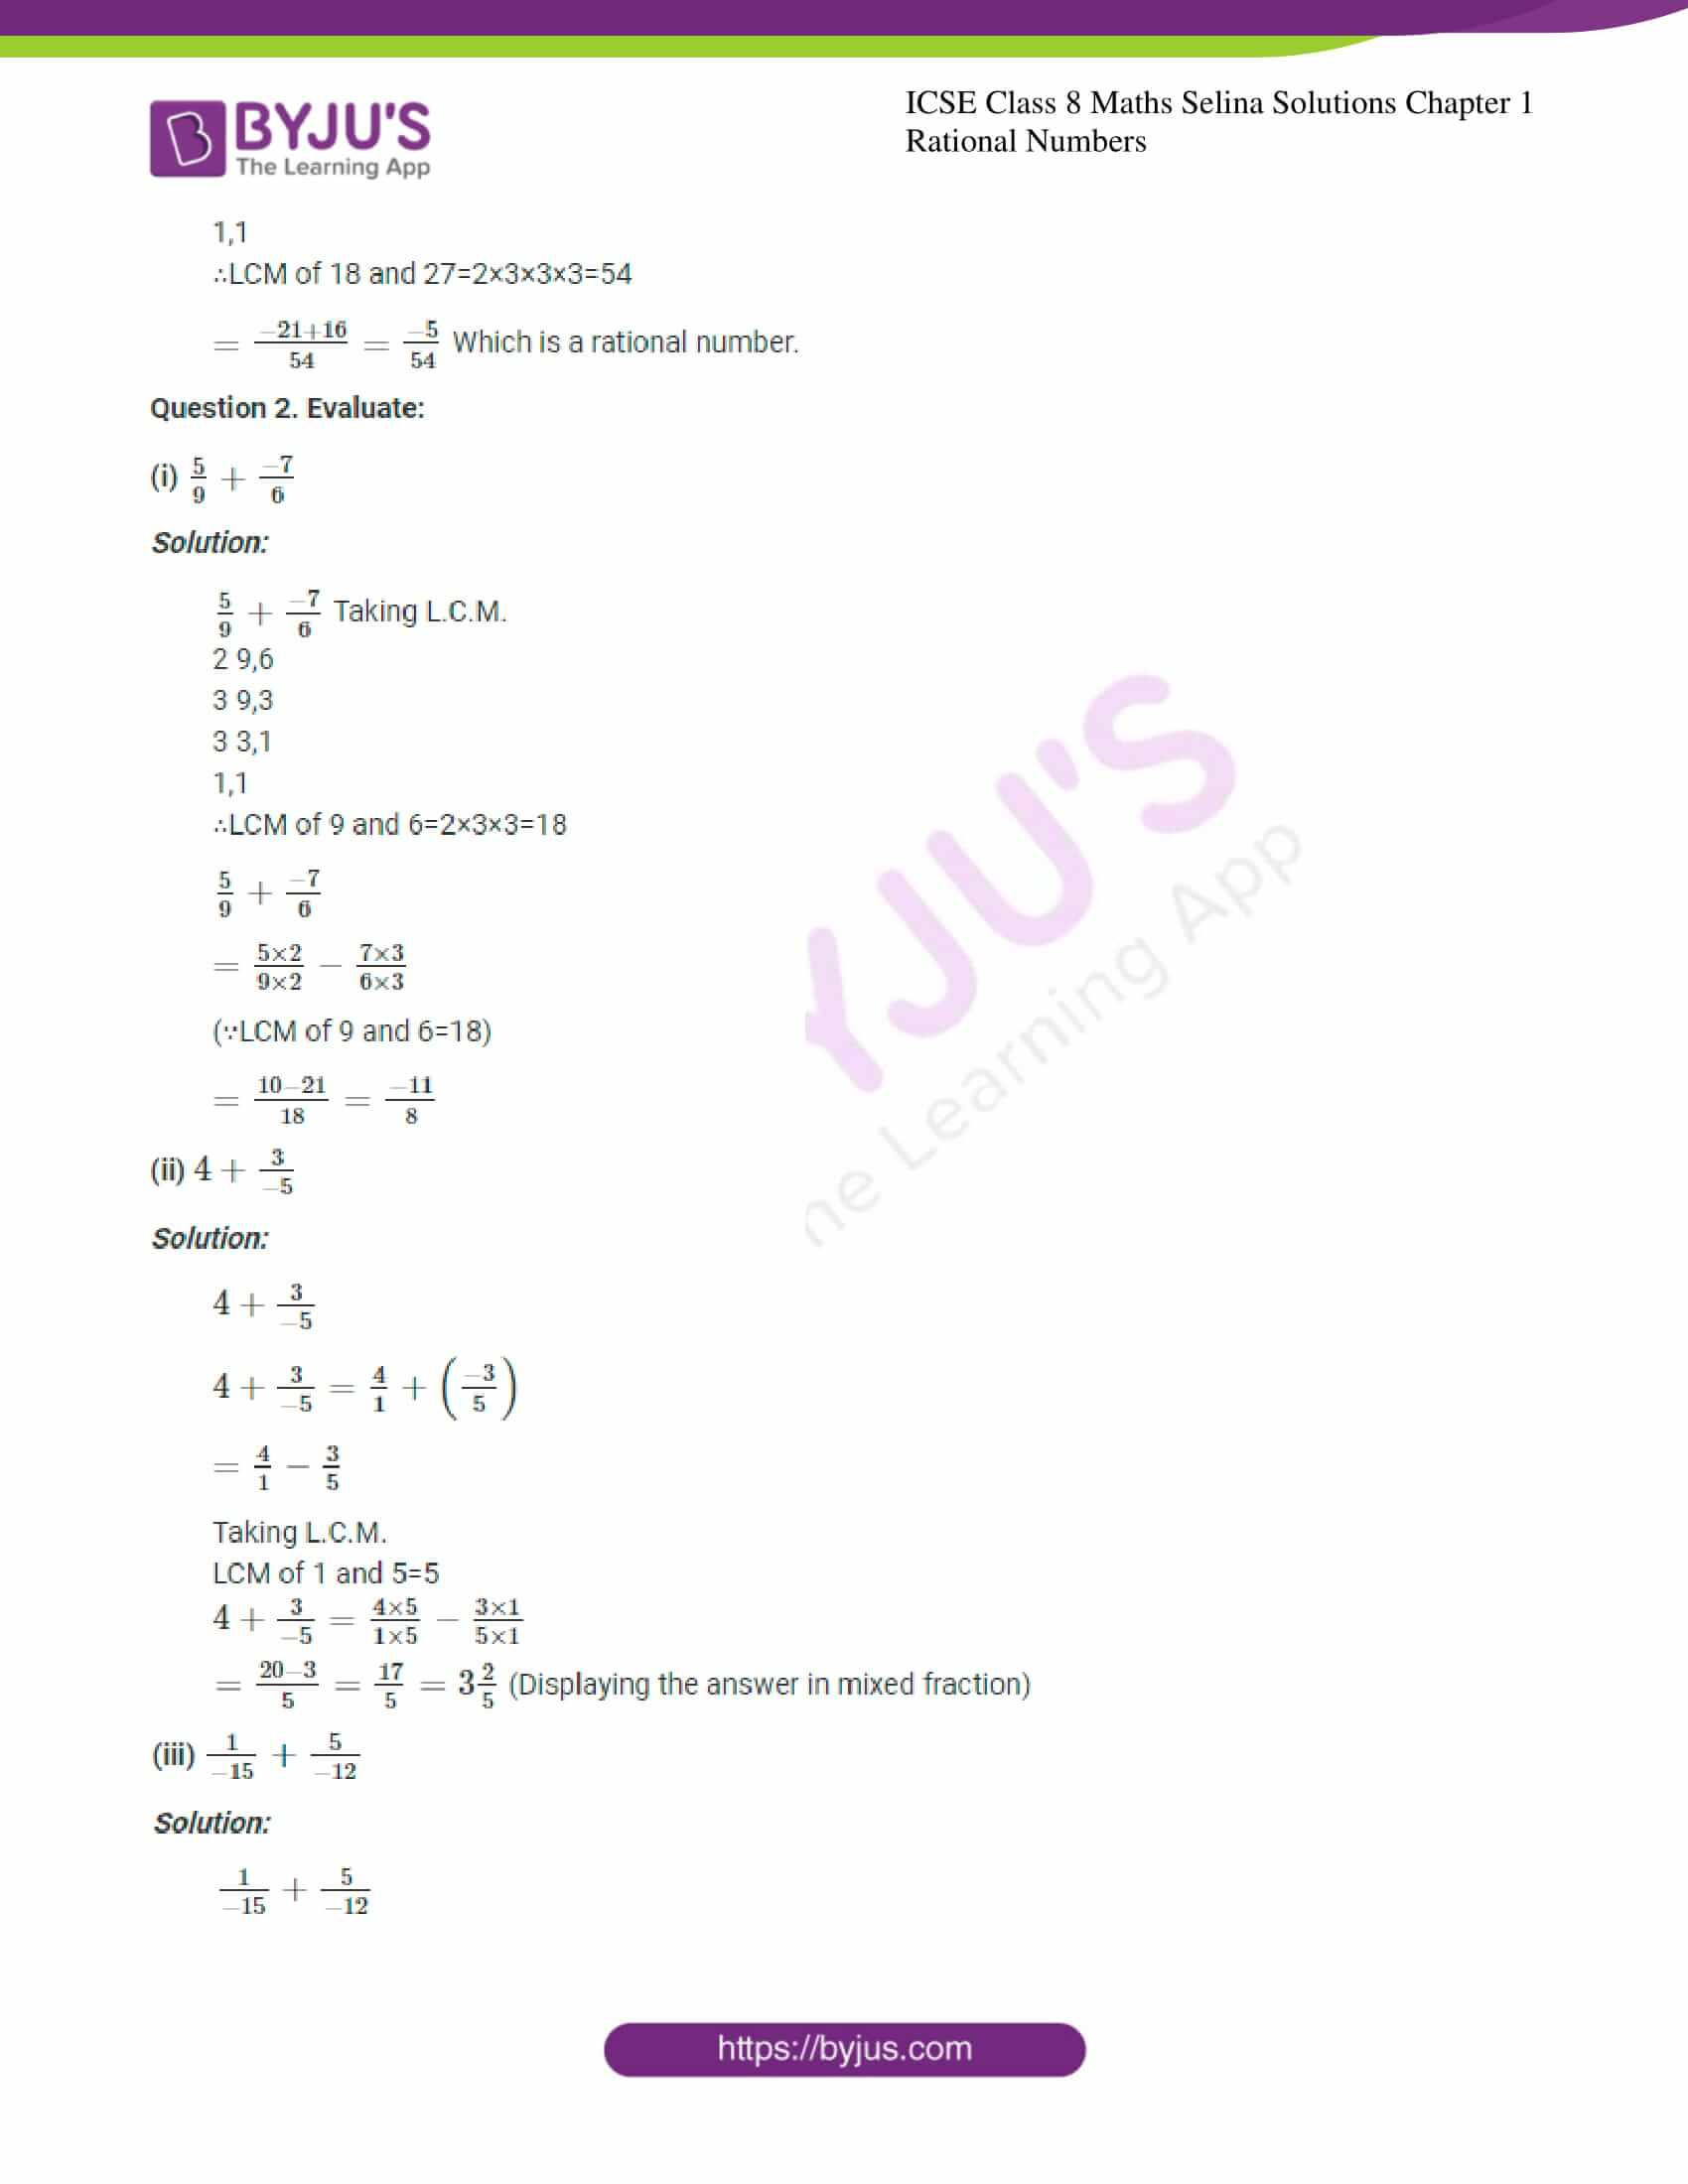 icse april7 class 8 maths selina solutions chapter 1 rational numbers 04